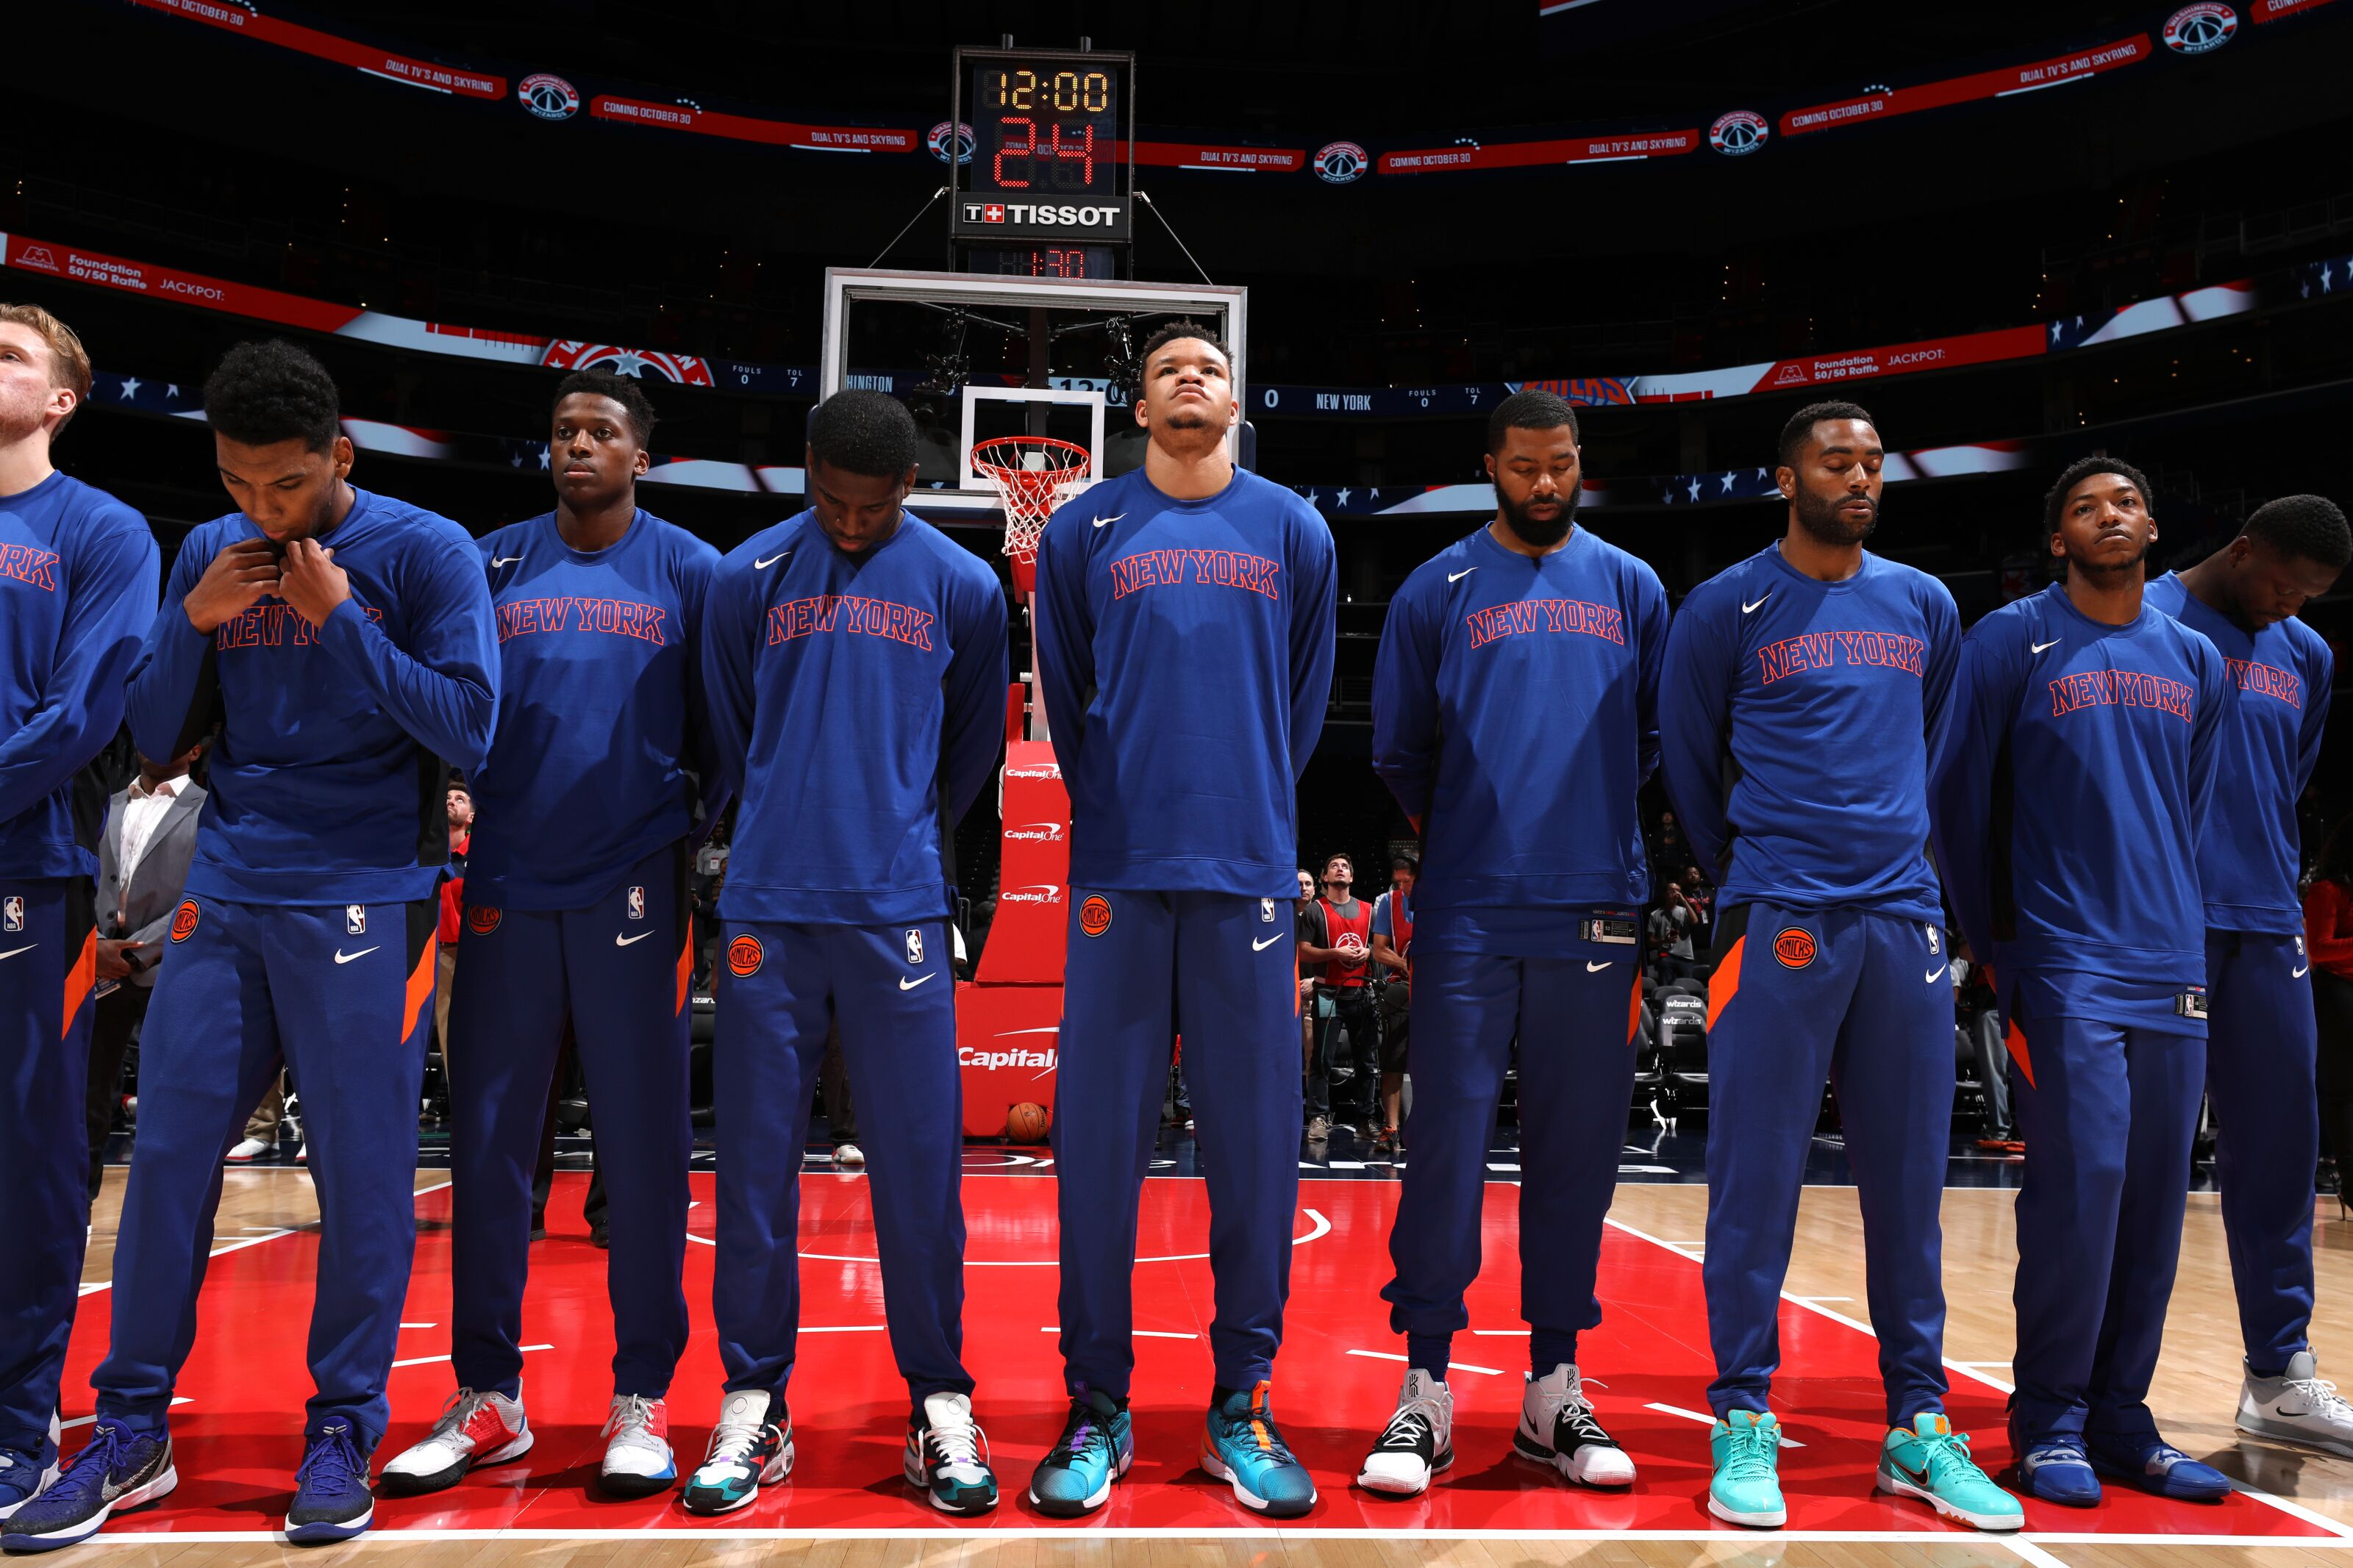 New York Knicks: Are the playoffs realistic in 2019-20?